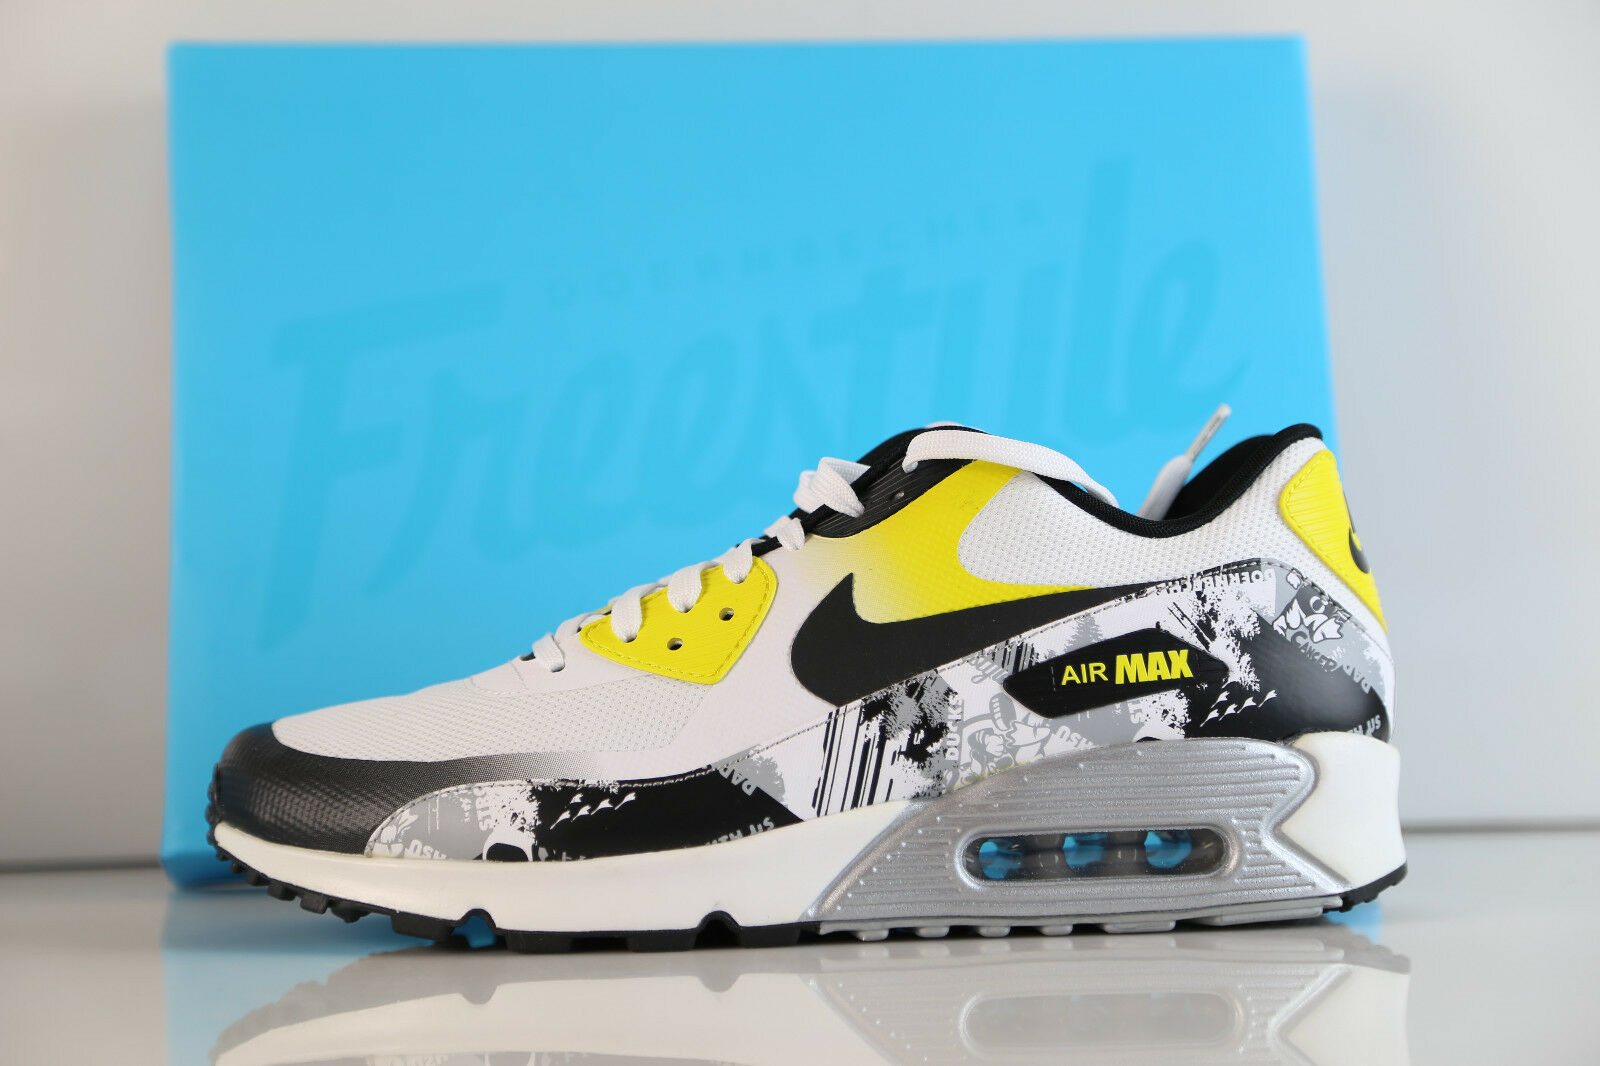 nike doernbecher air max 90 ducks prime pb oregon ducks 90 Blanc  Jaune  ah6830-100 7 - 12 0ad4bc